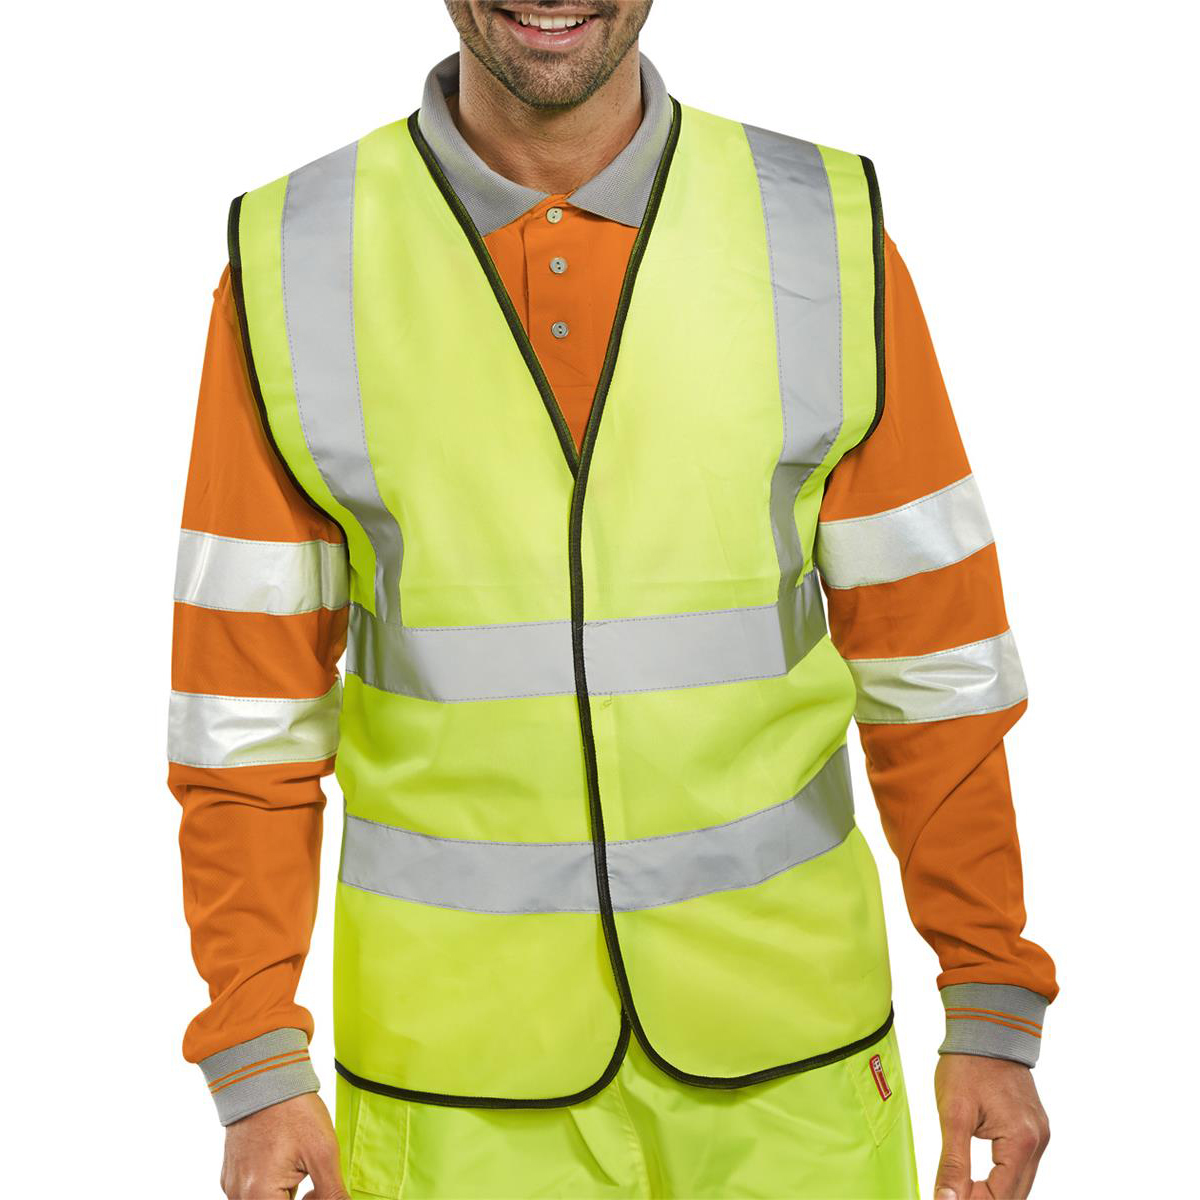 Bodywarmers Bseen High Visibility Waistcoat Full App Medium Yellow/Black Piping Ref WCENGM *Up to 3 Day Leadtime*